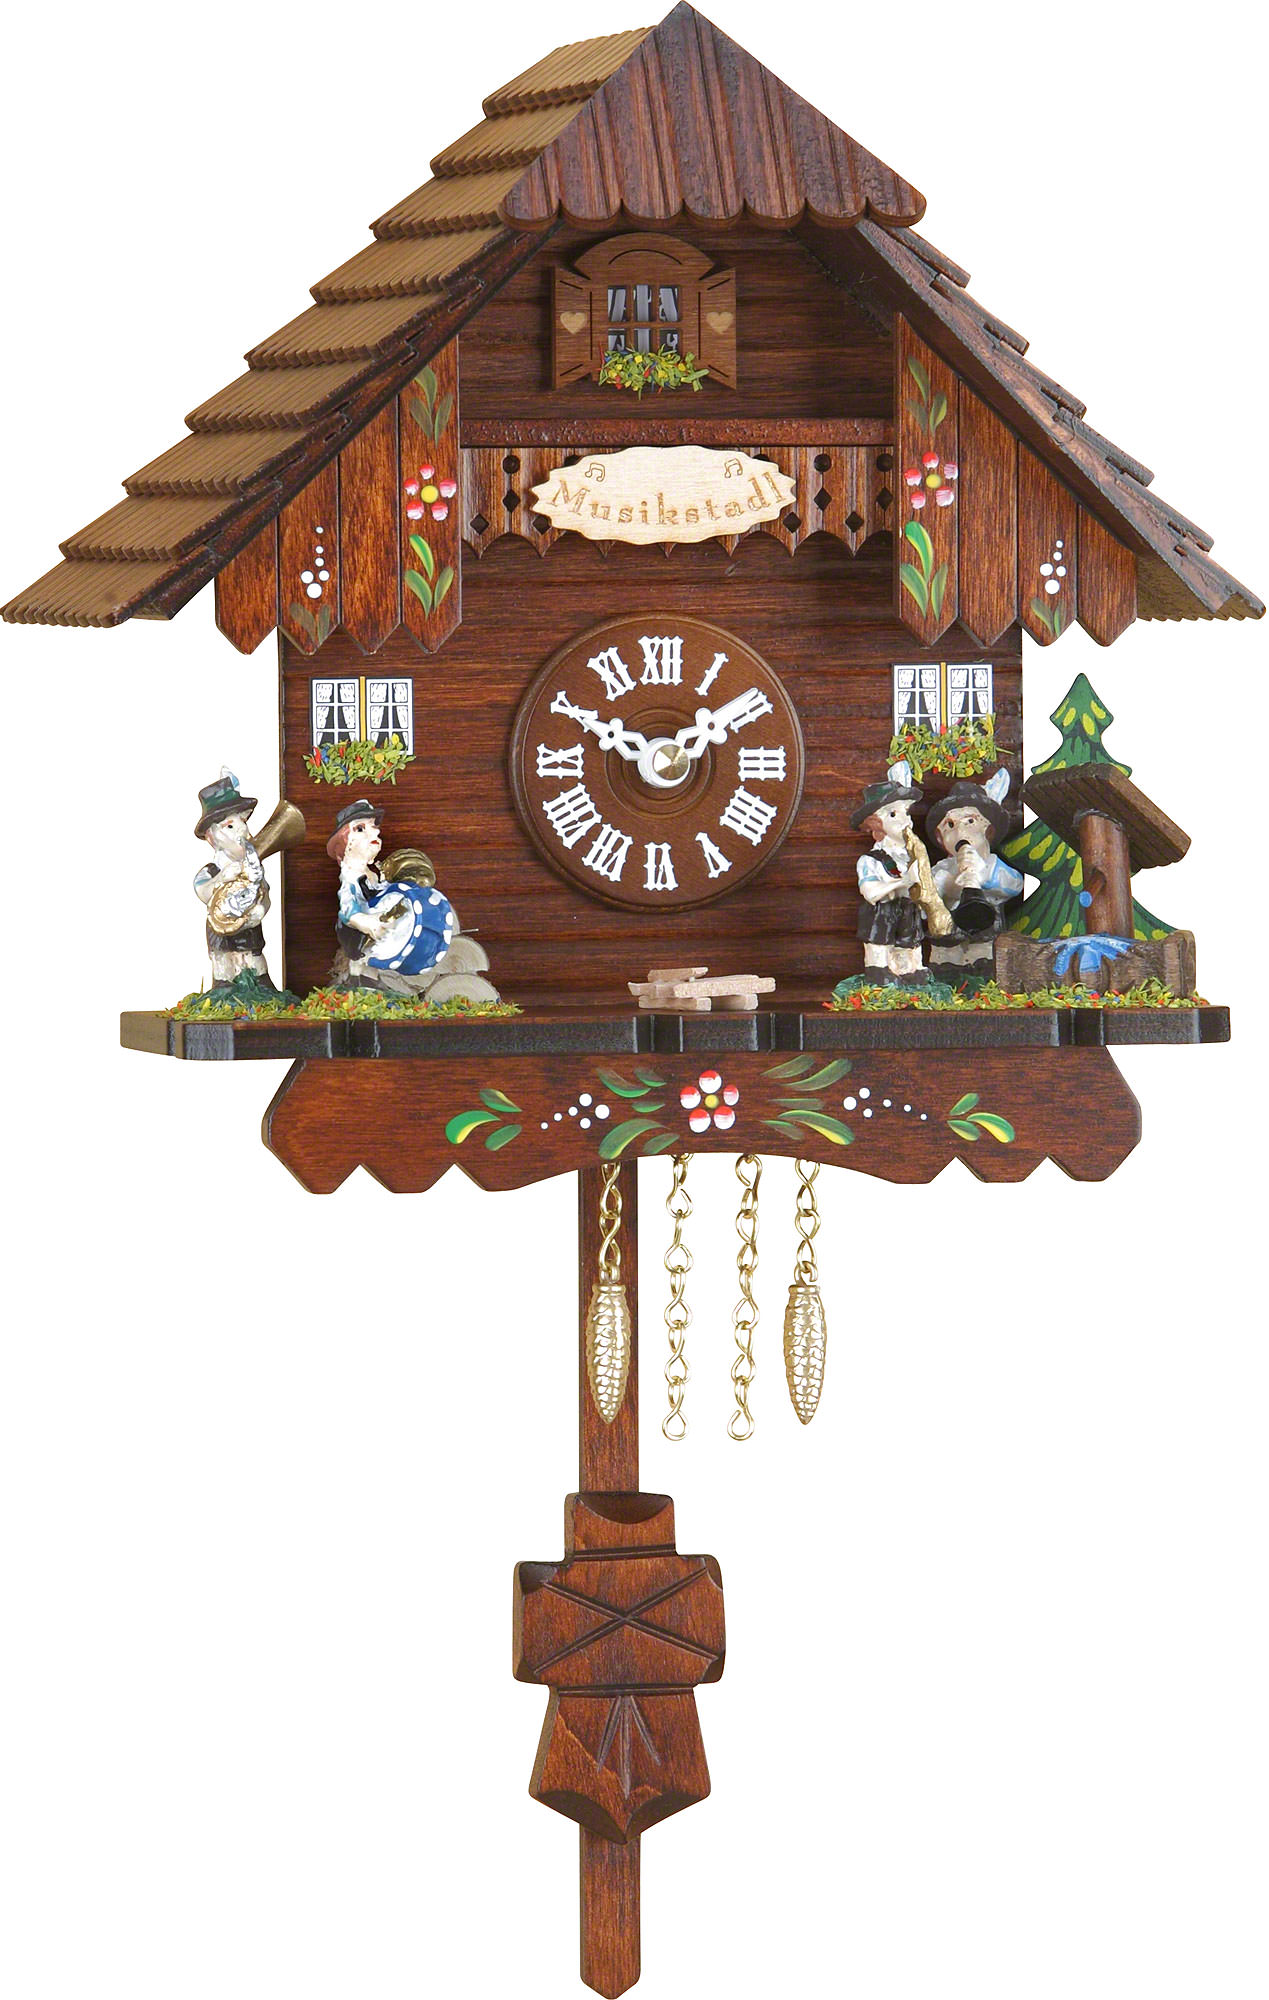 Cuckoo clock kuckulino quartz movement black forest pendulum clock style 18cm by trenkle uhren - Cuckoo clock pendulum ...